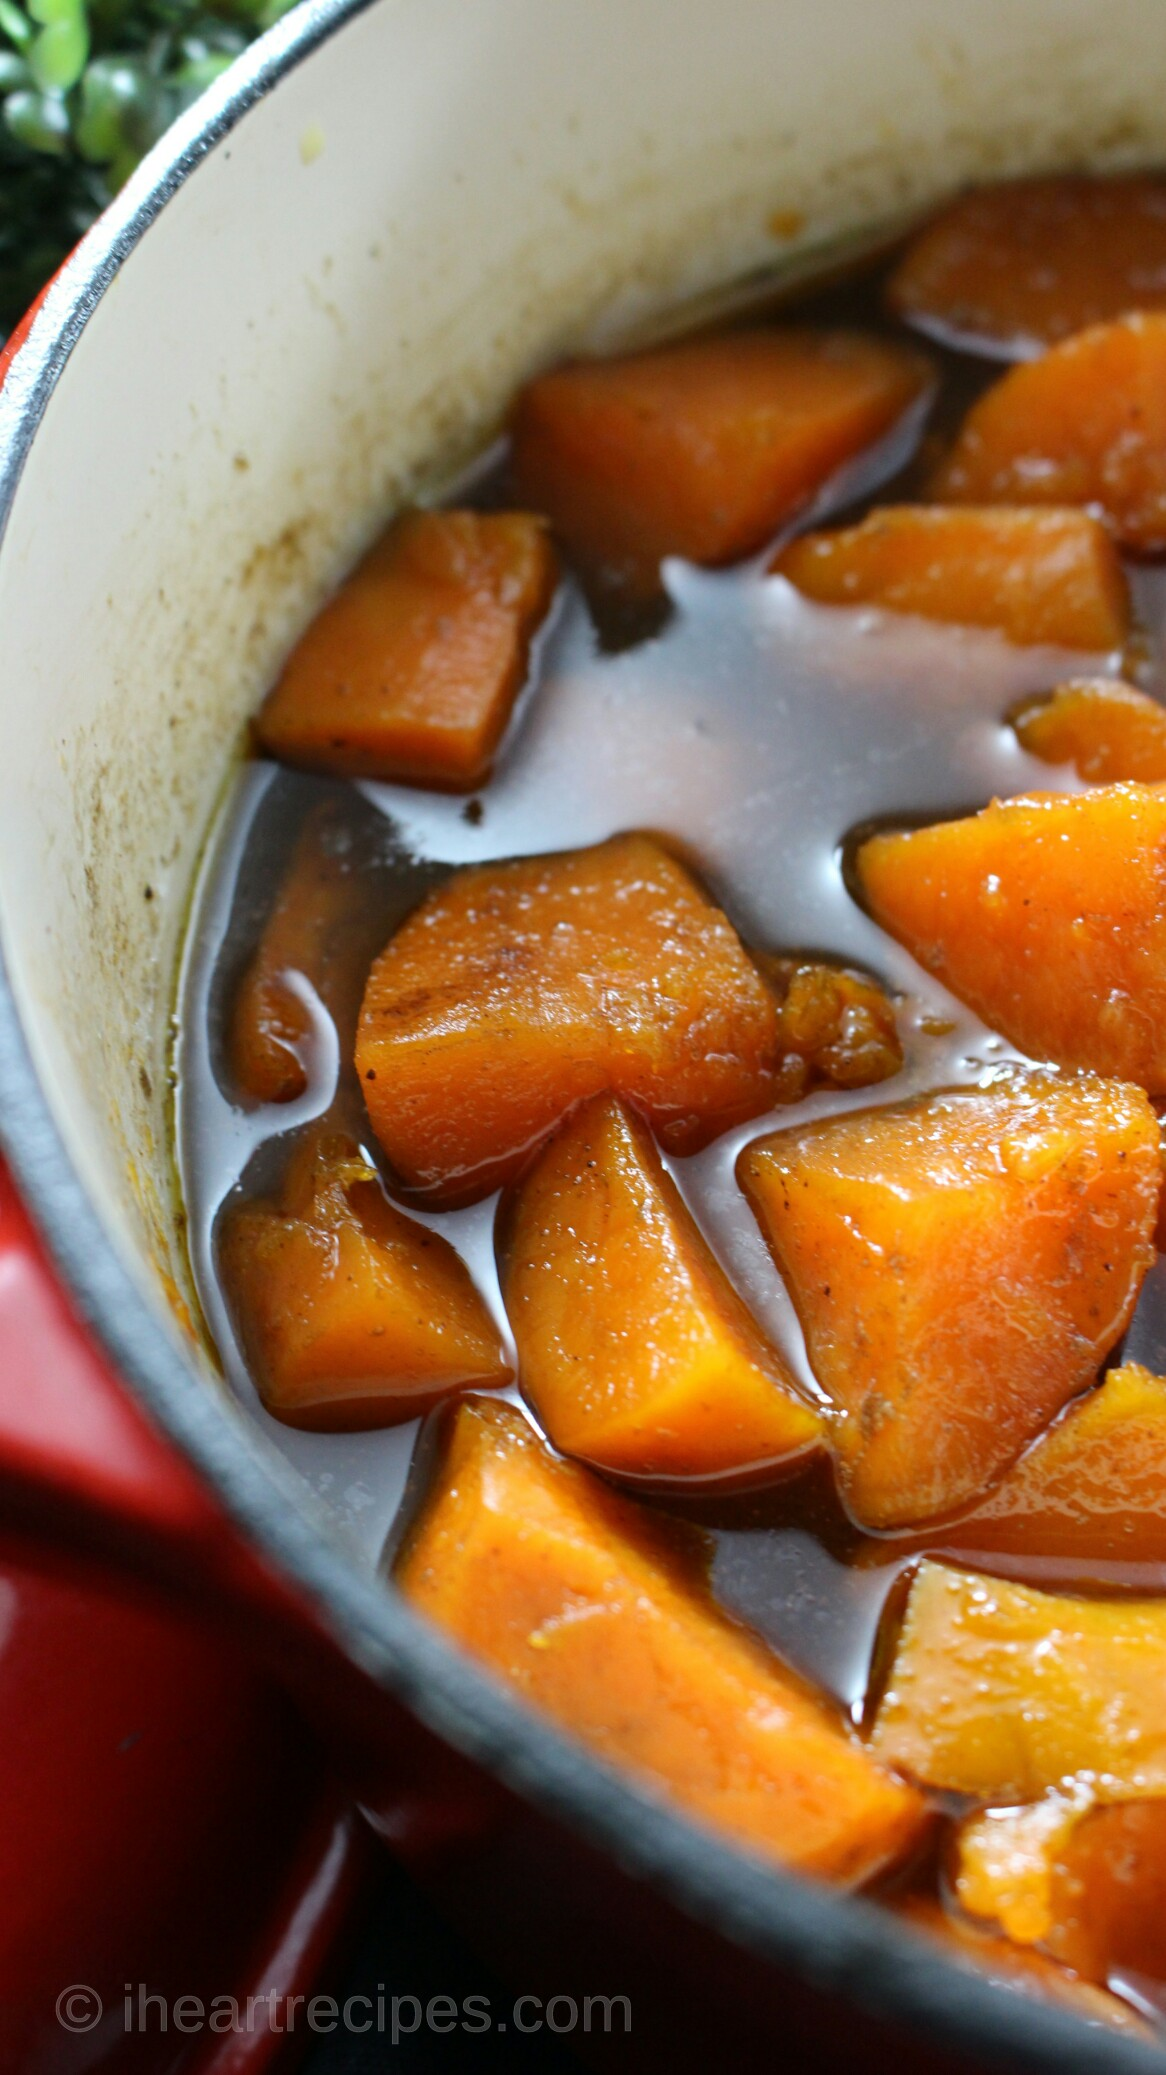 Learn how to make these Bourbon Candied Yams on your stovetop today!